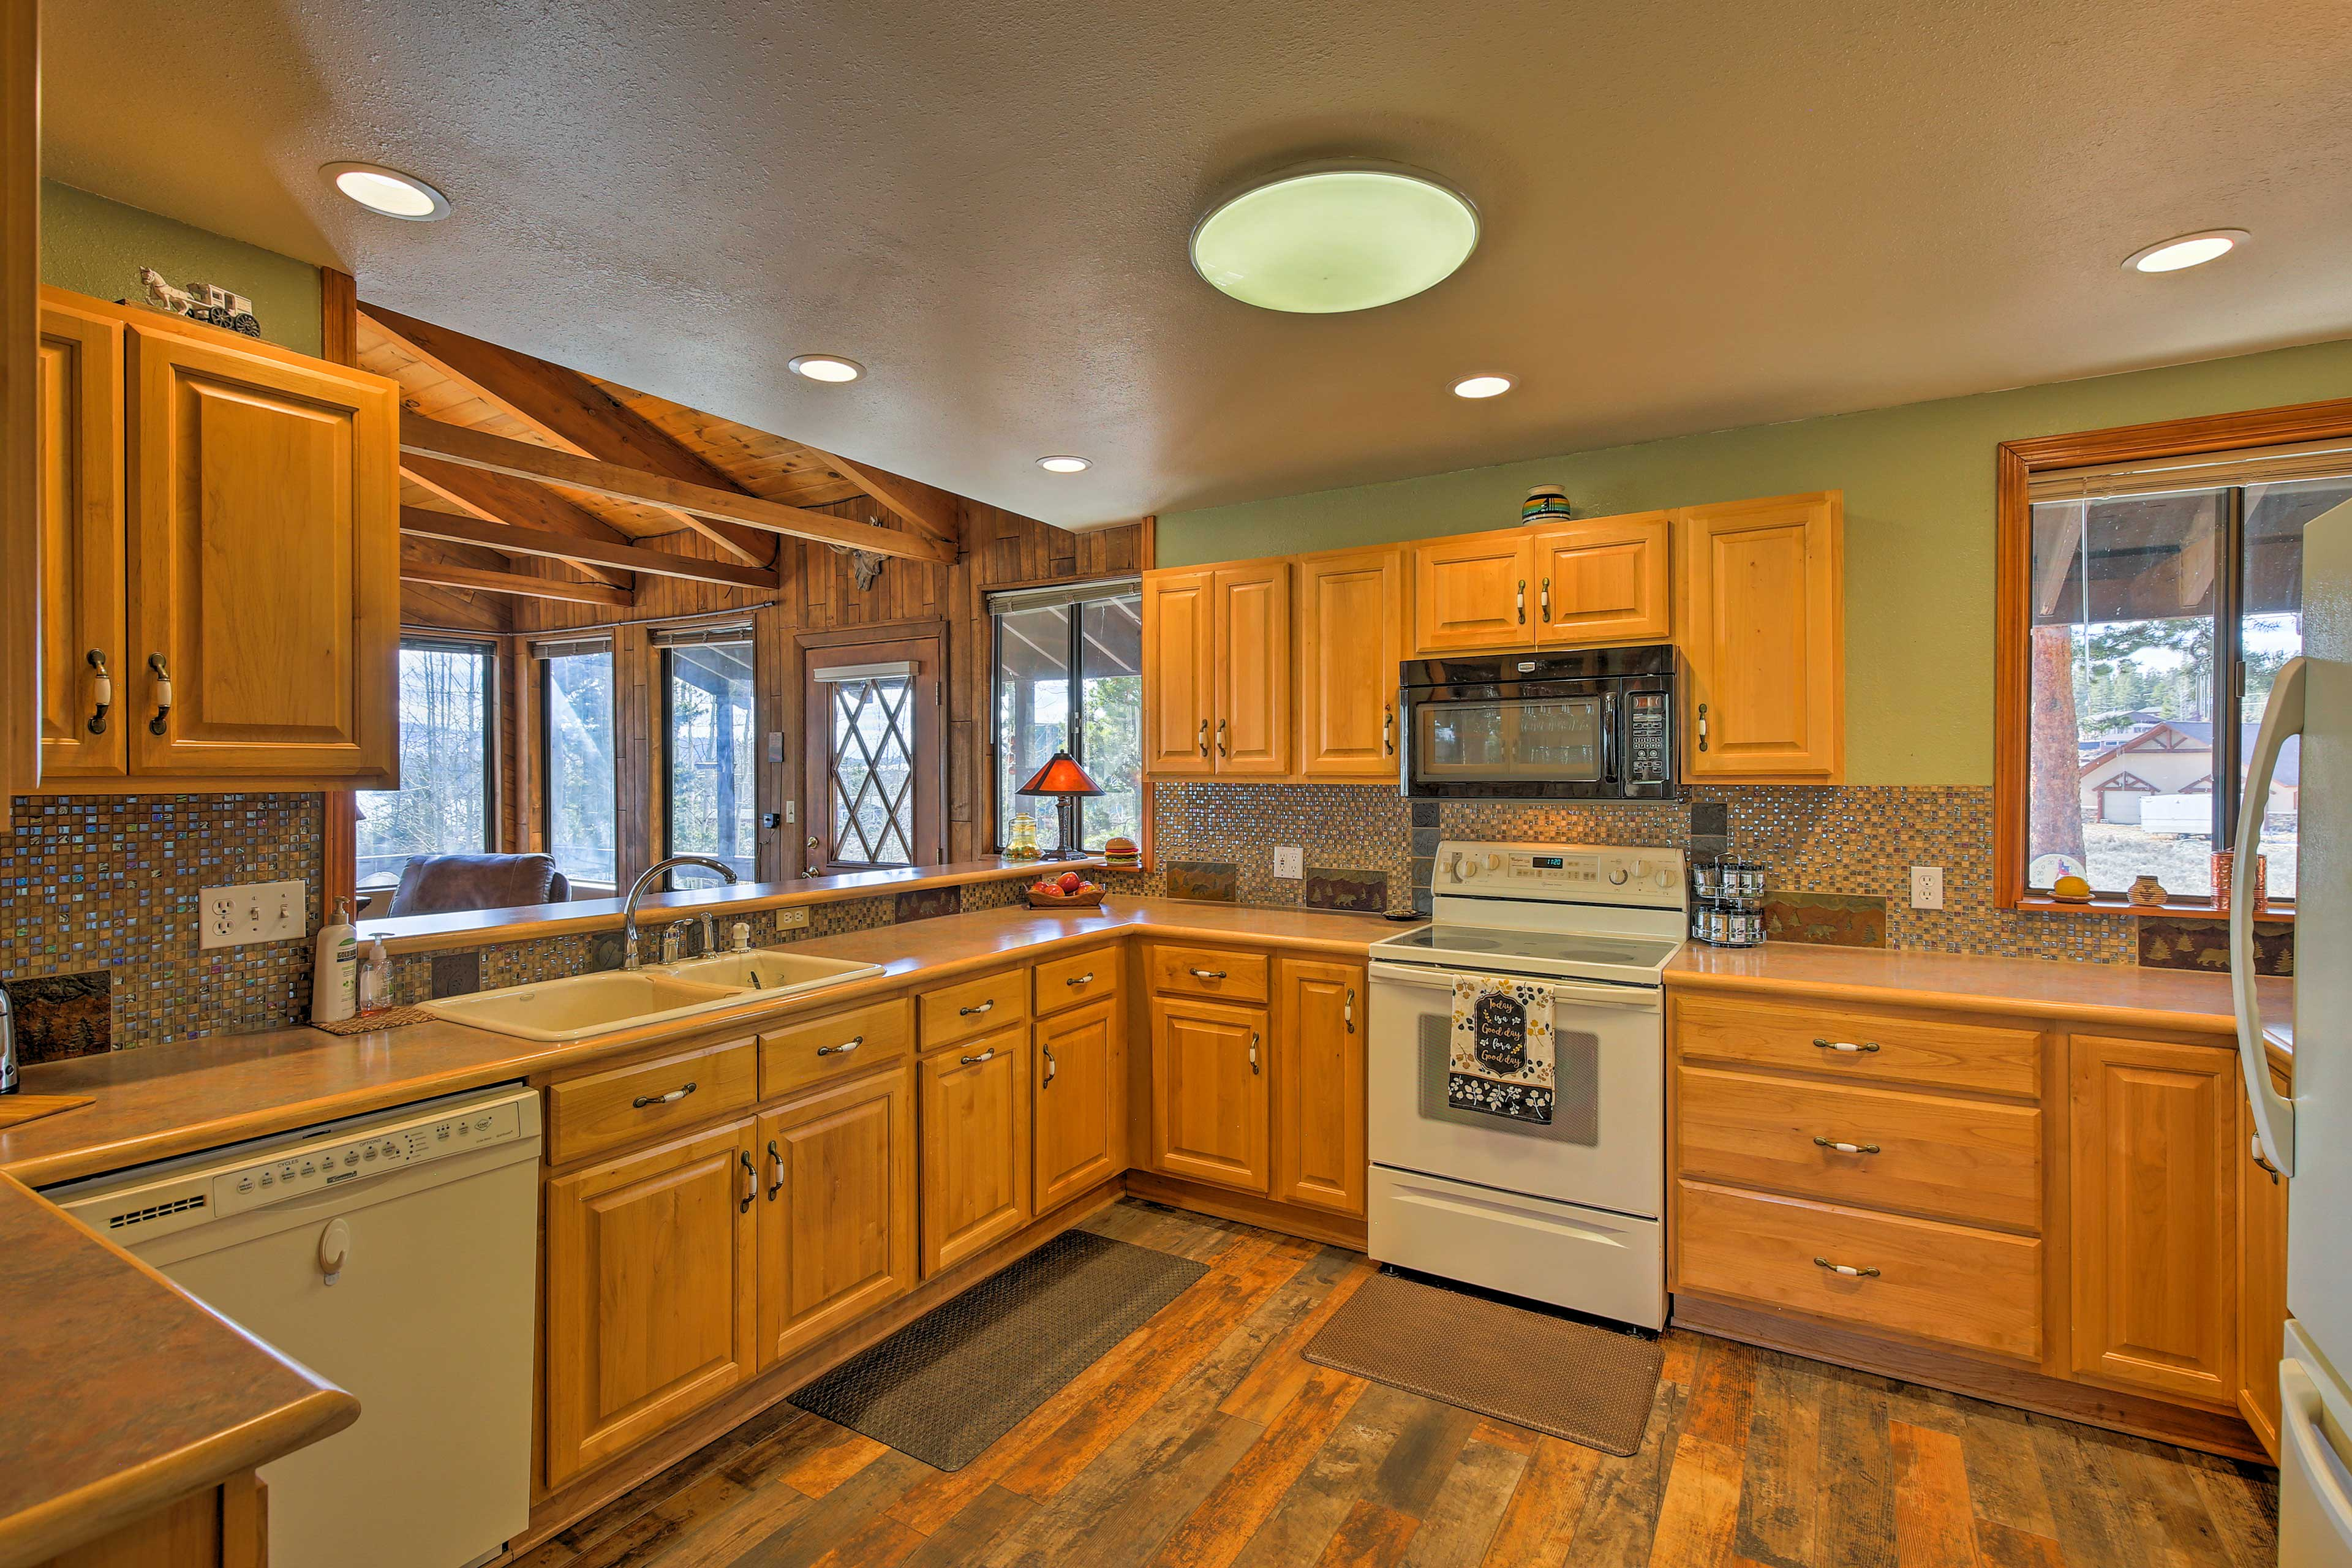 Find modern appliances and generous counter space in the fully equipped kitchen.